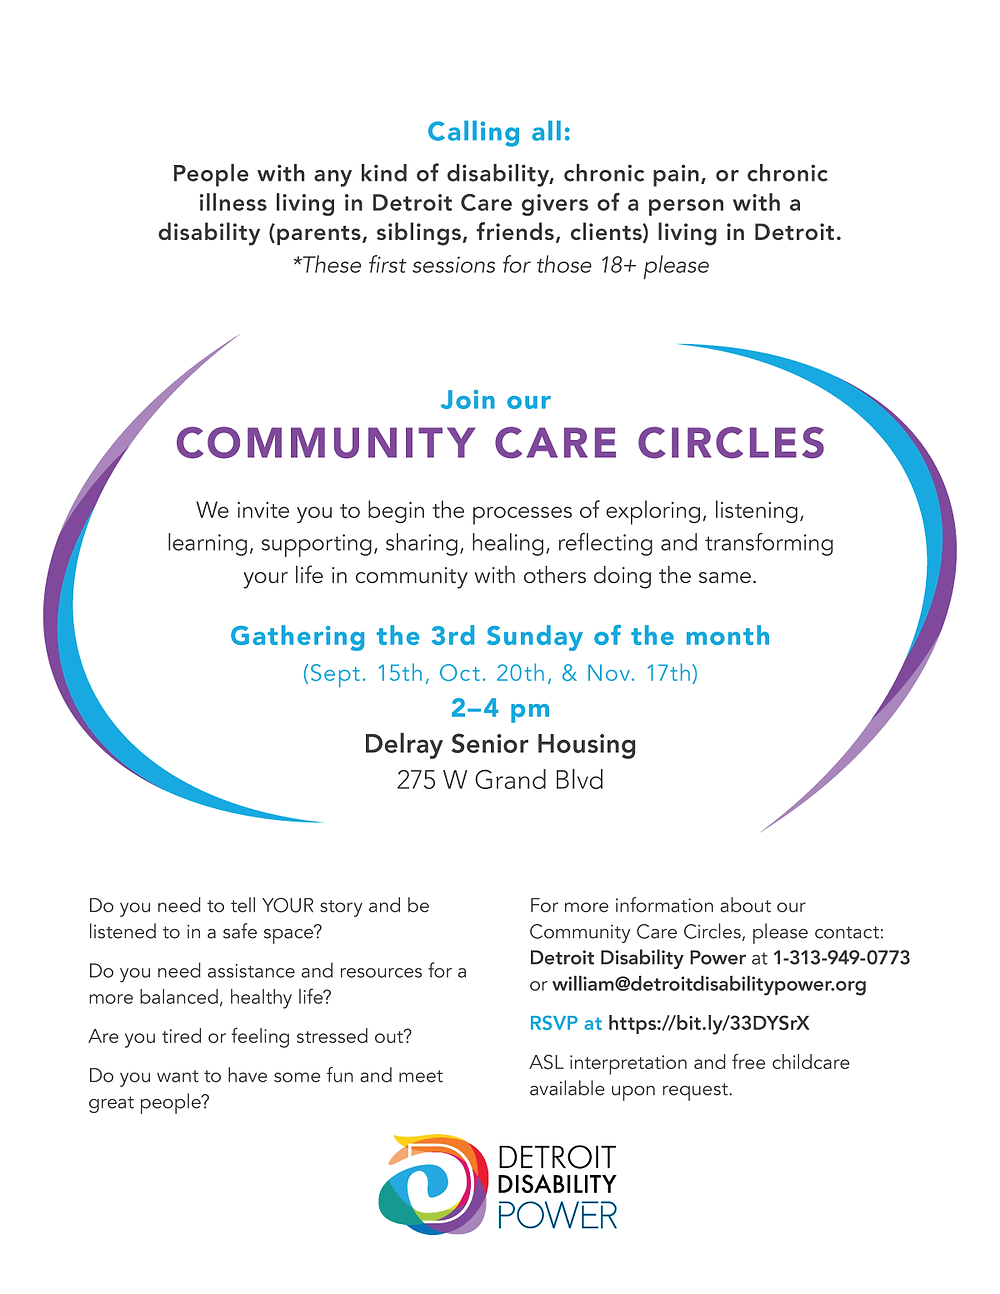 Community Care Circles flyer